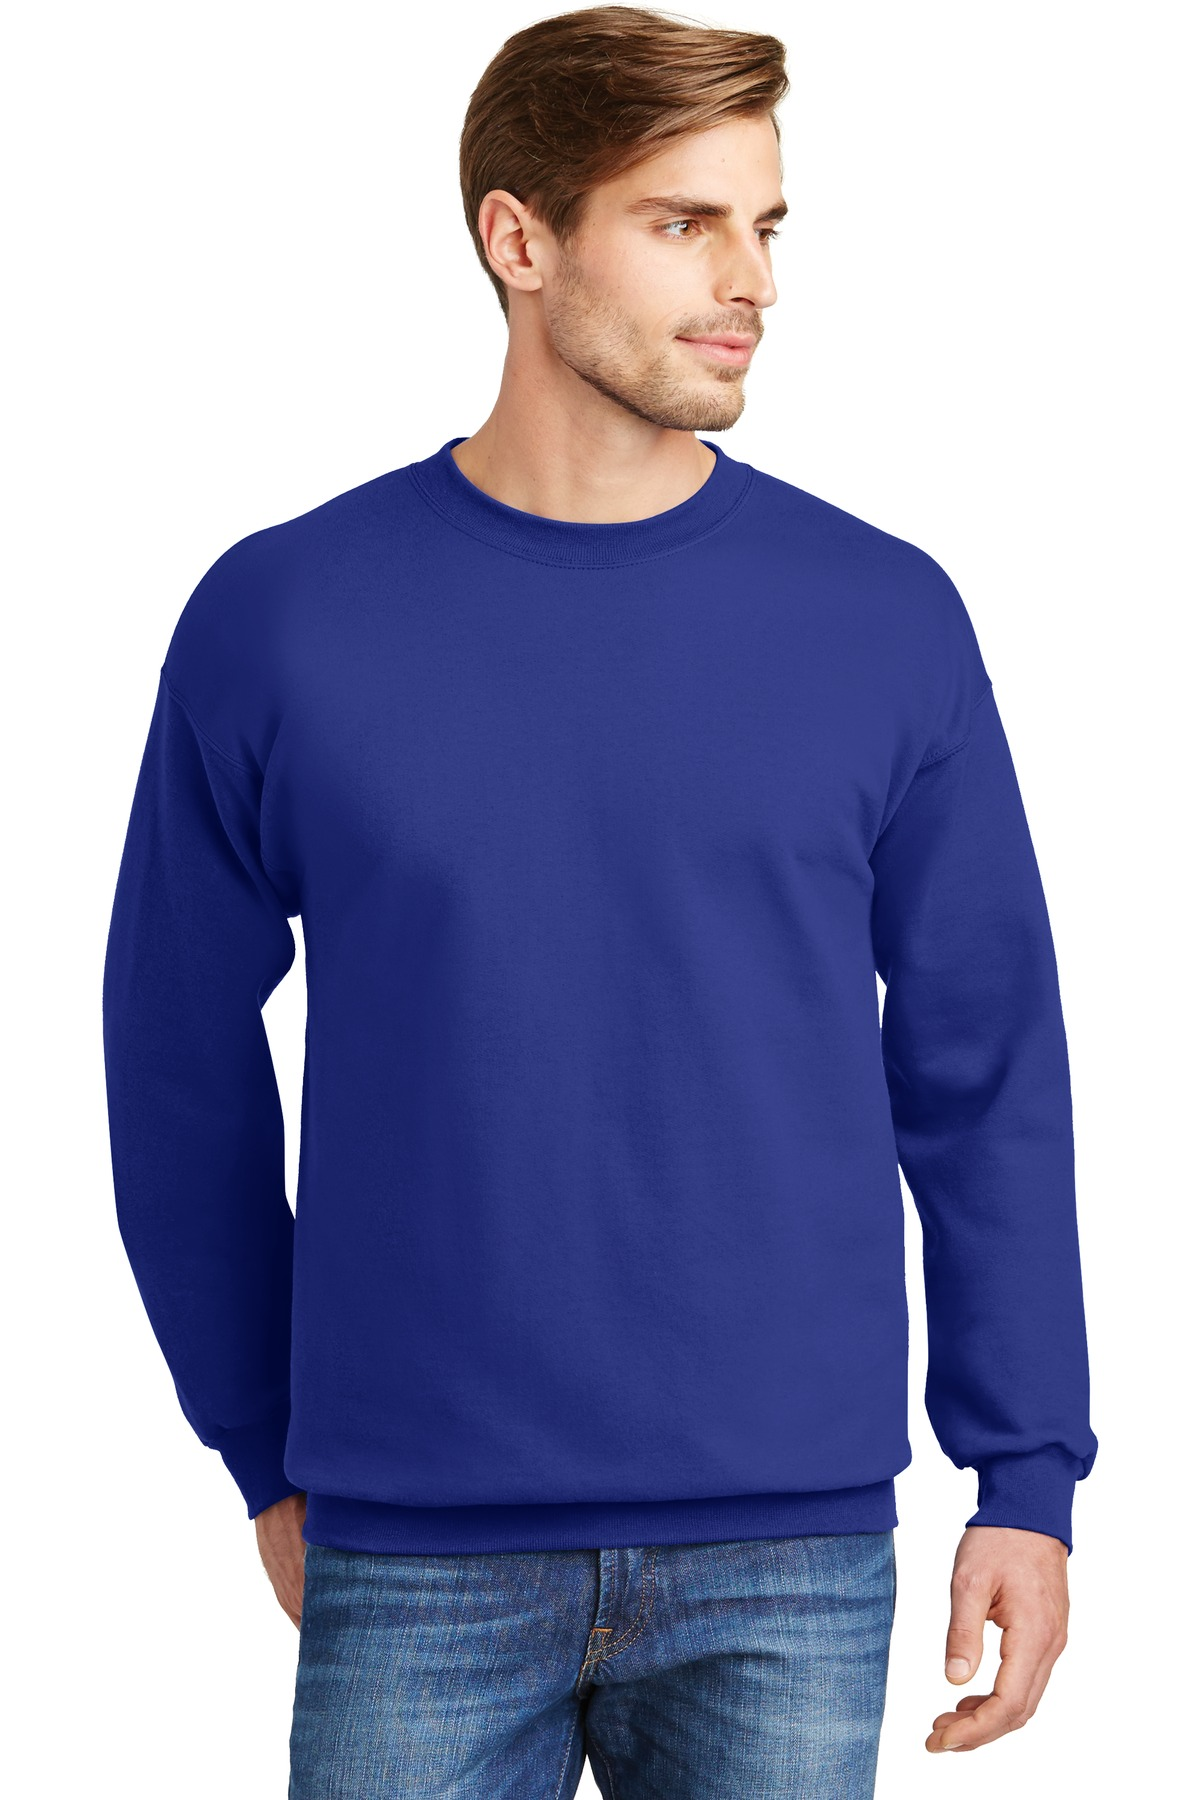 Hanes ®  Ultimate Cotton ®  - Crewneck Sweatshirt.  F260 - Deep Royal